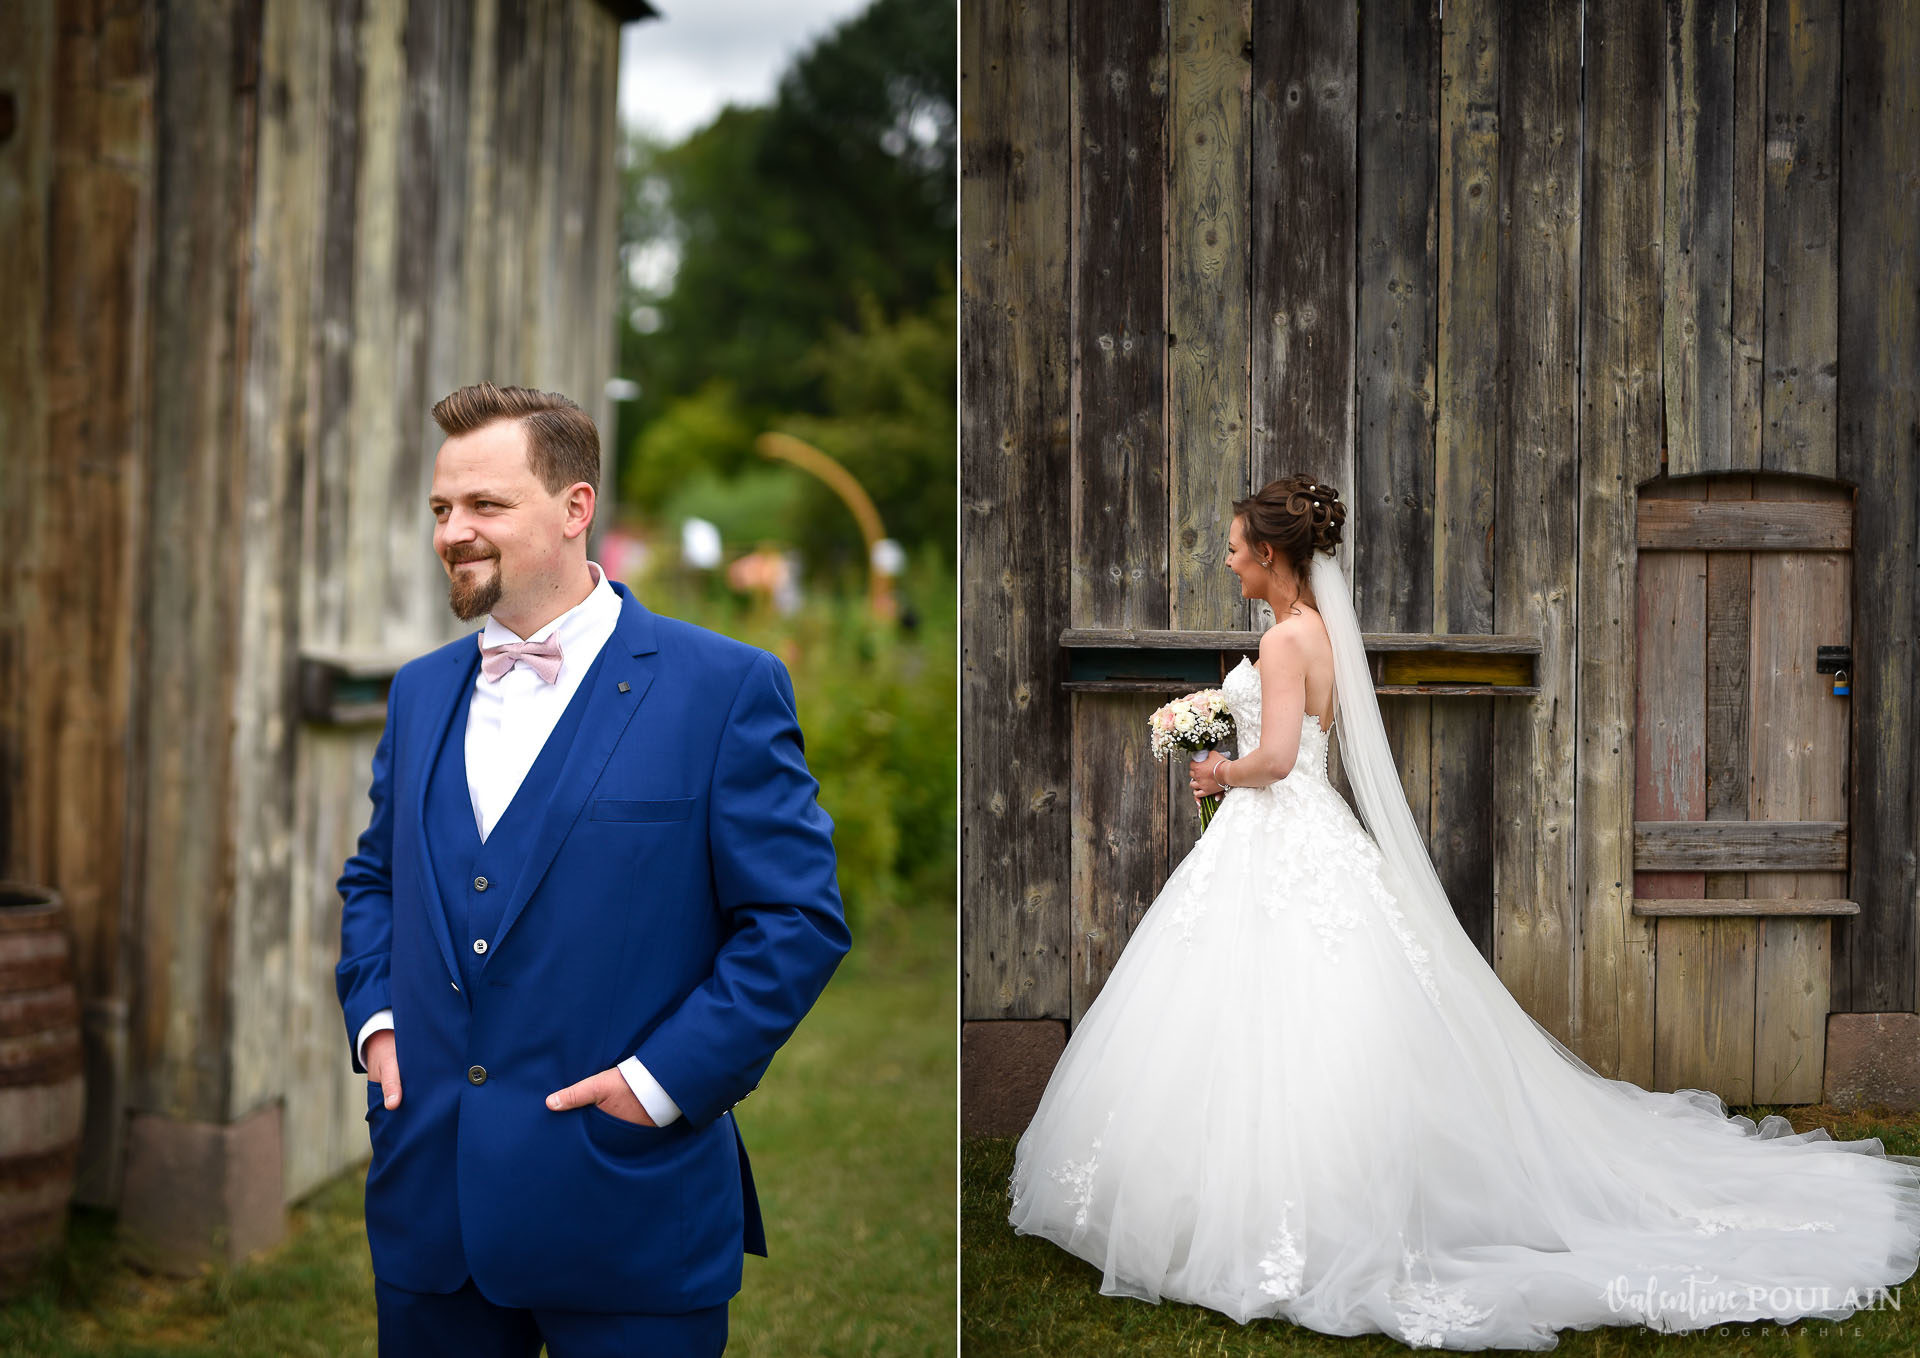 Mariage cool ferme weyerbach - Valentine Poulain duo